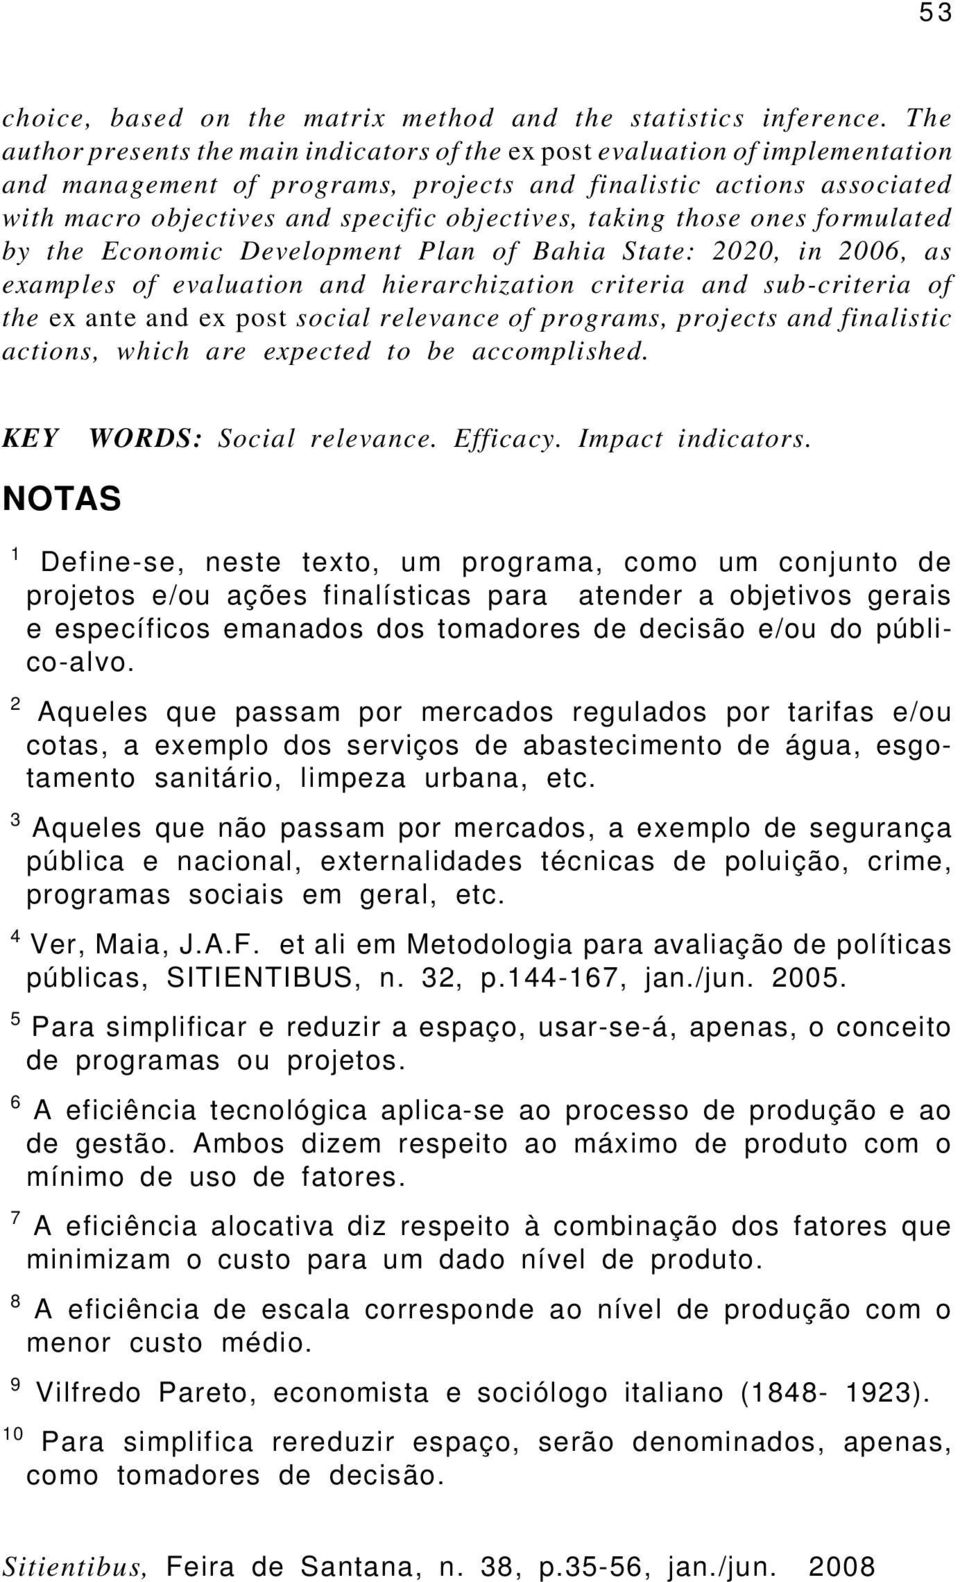 objectives, taking those ones formulated by the Economic Development Plan of Bahia State: 2020, in 2006, as examples of evaluation and hierarchization criteria and sub-criteria of the ex ante and ex